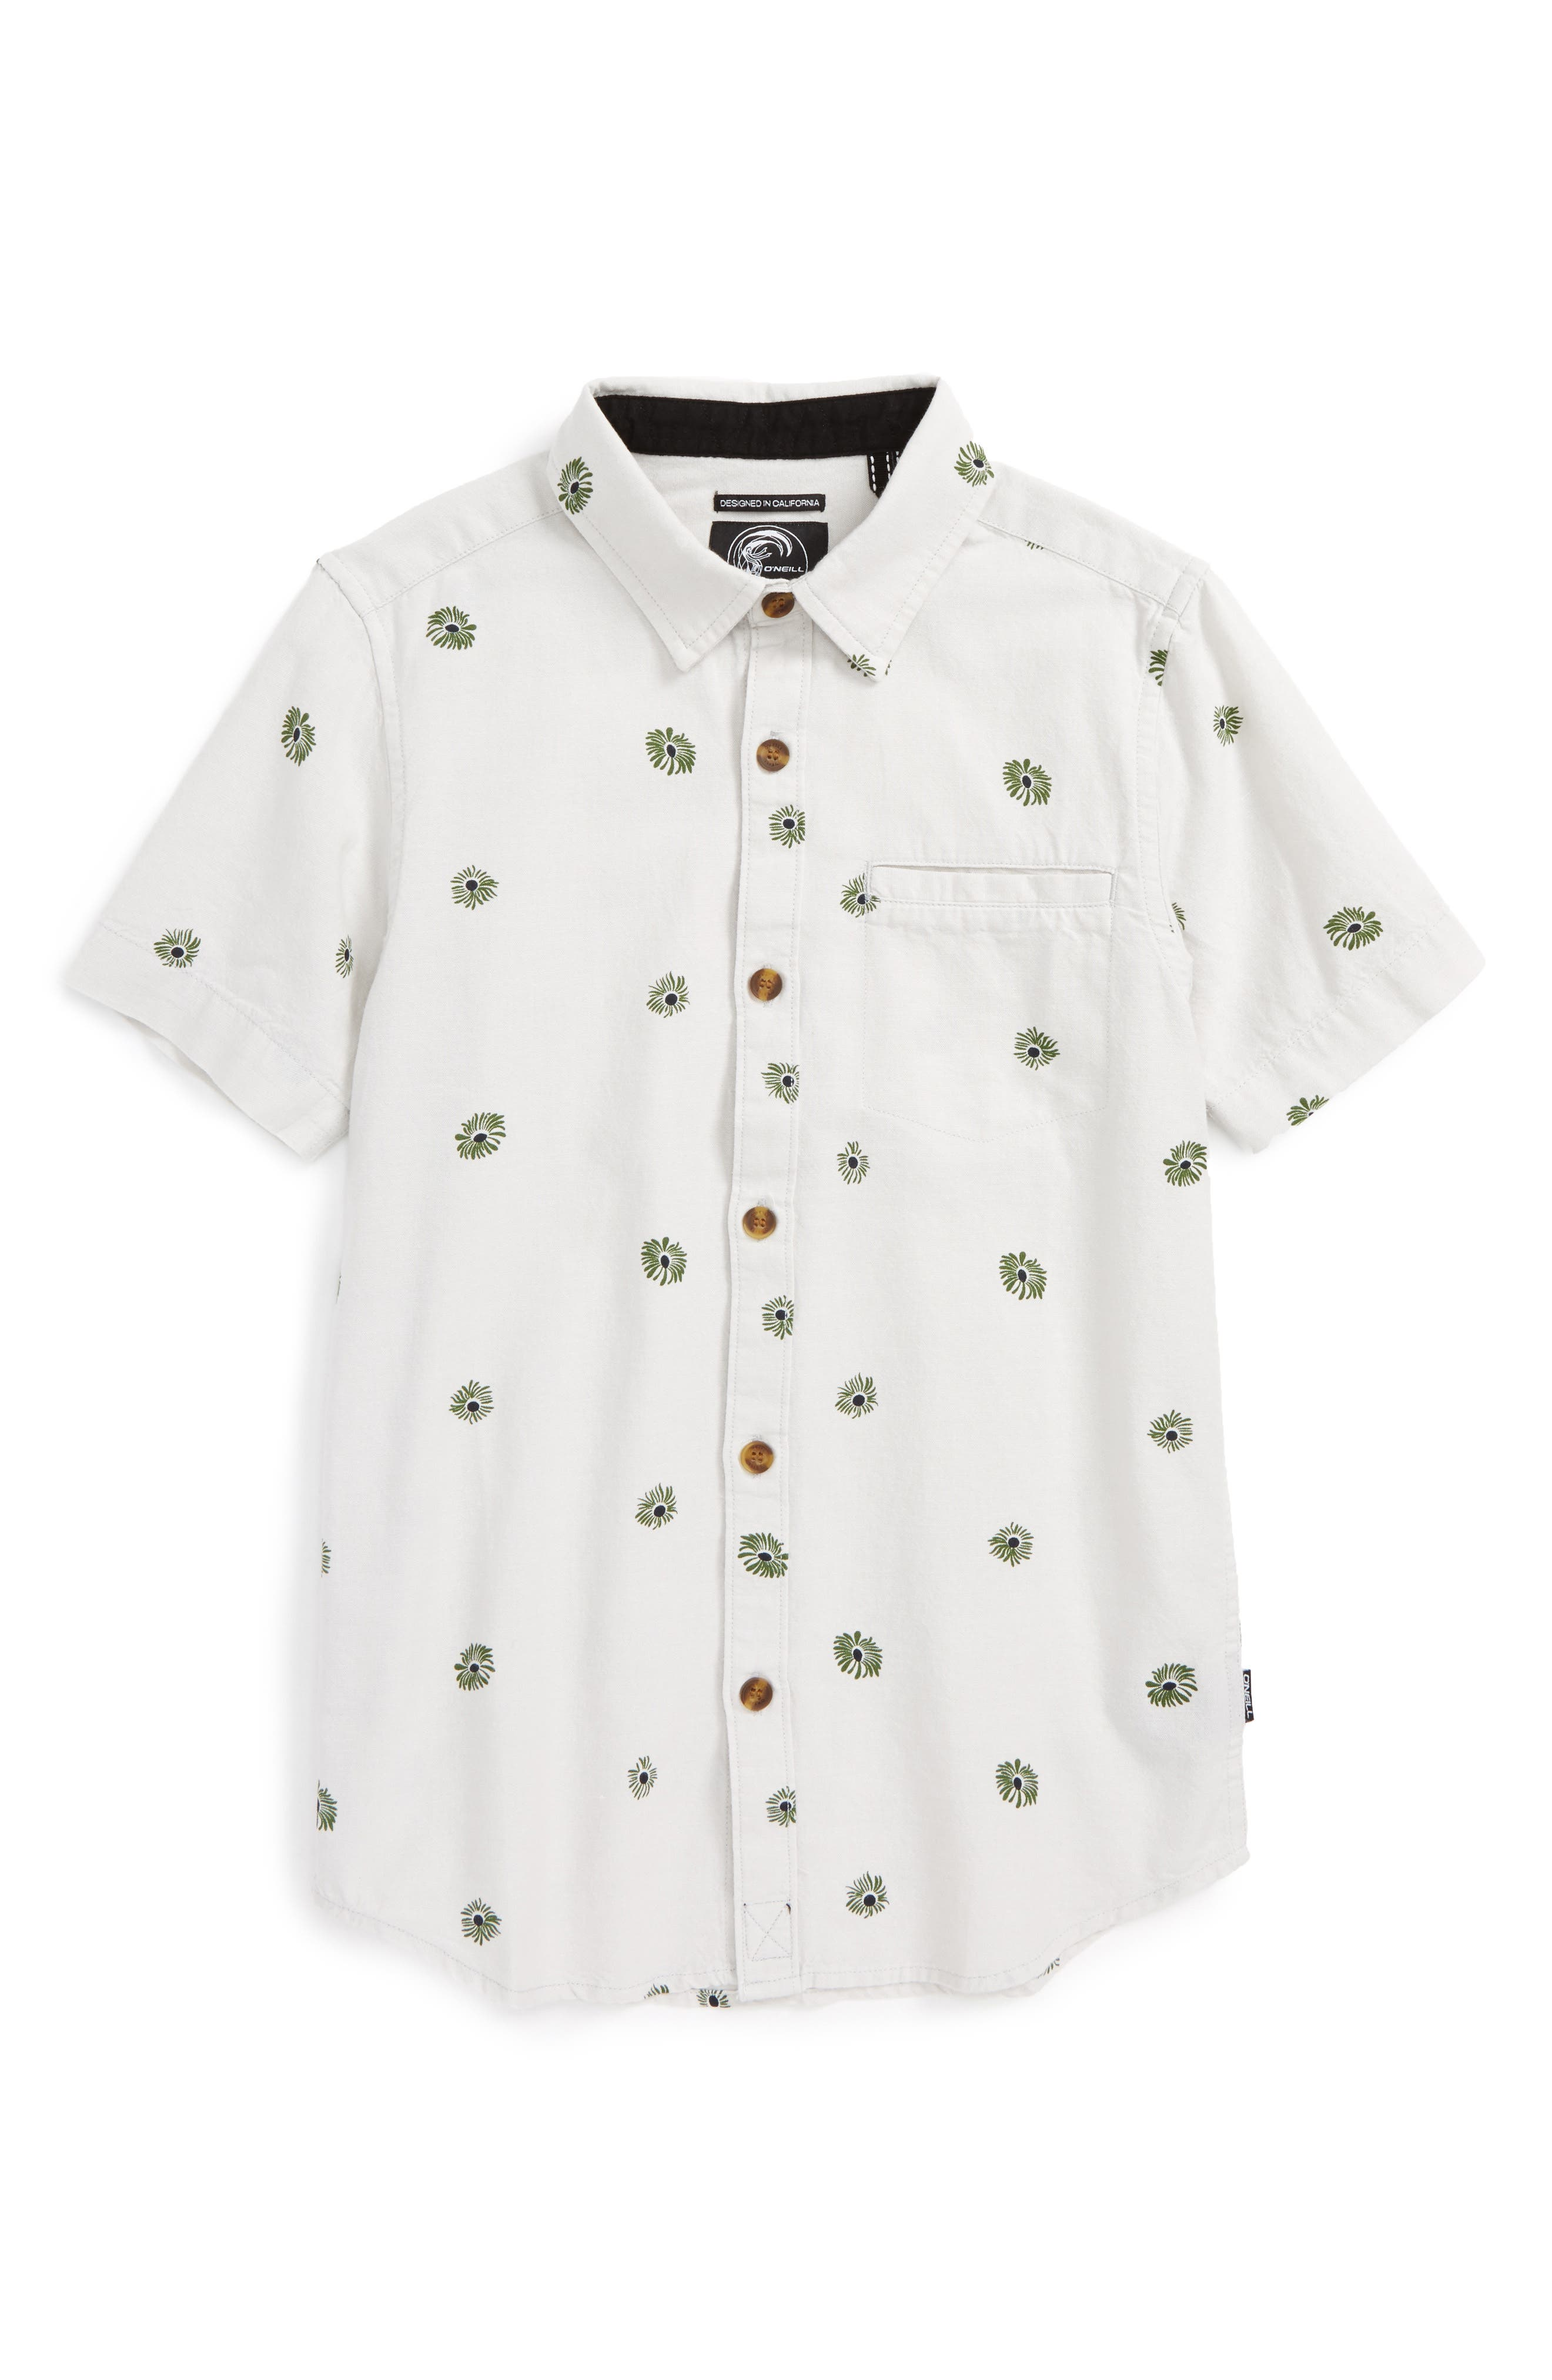 Alternate Image 1 Selected - O'Neill Brees Floral Print Woven Shirt (Big Boys)